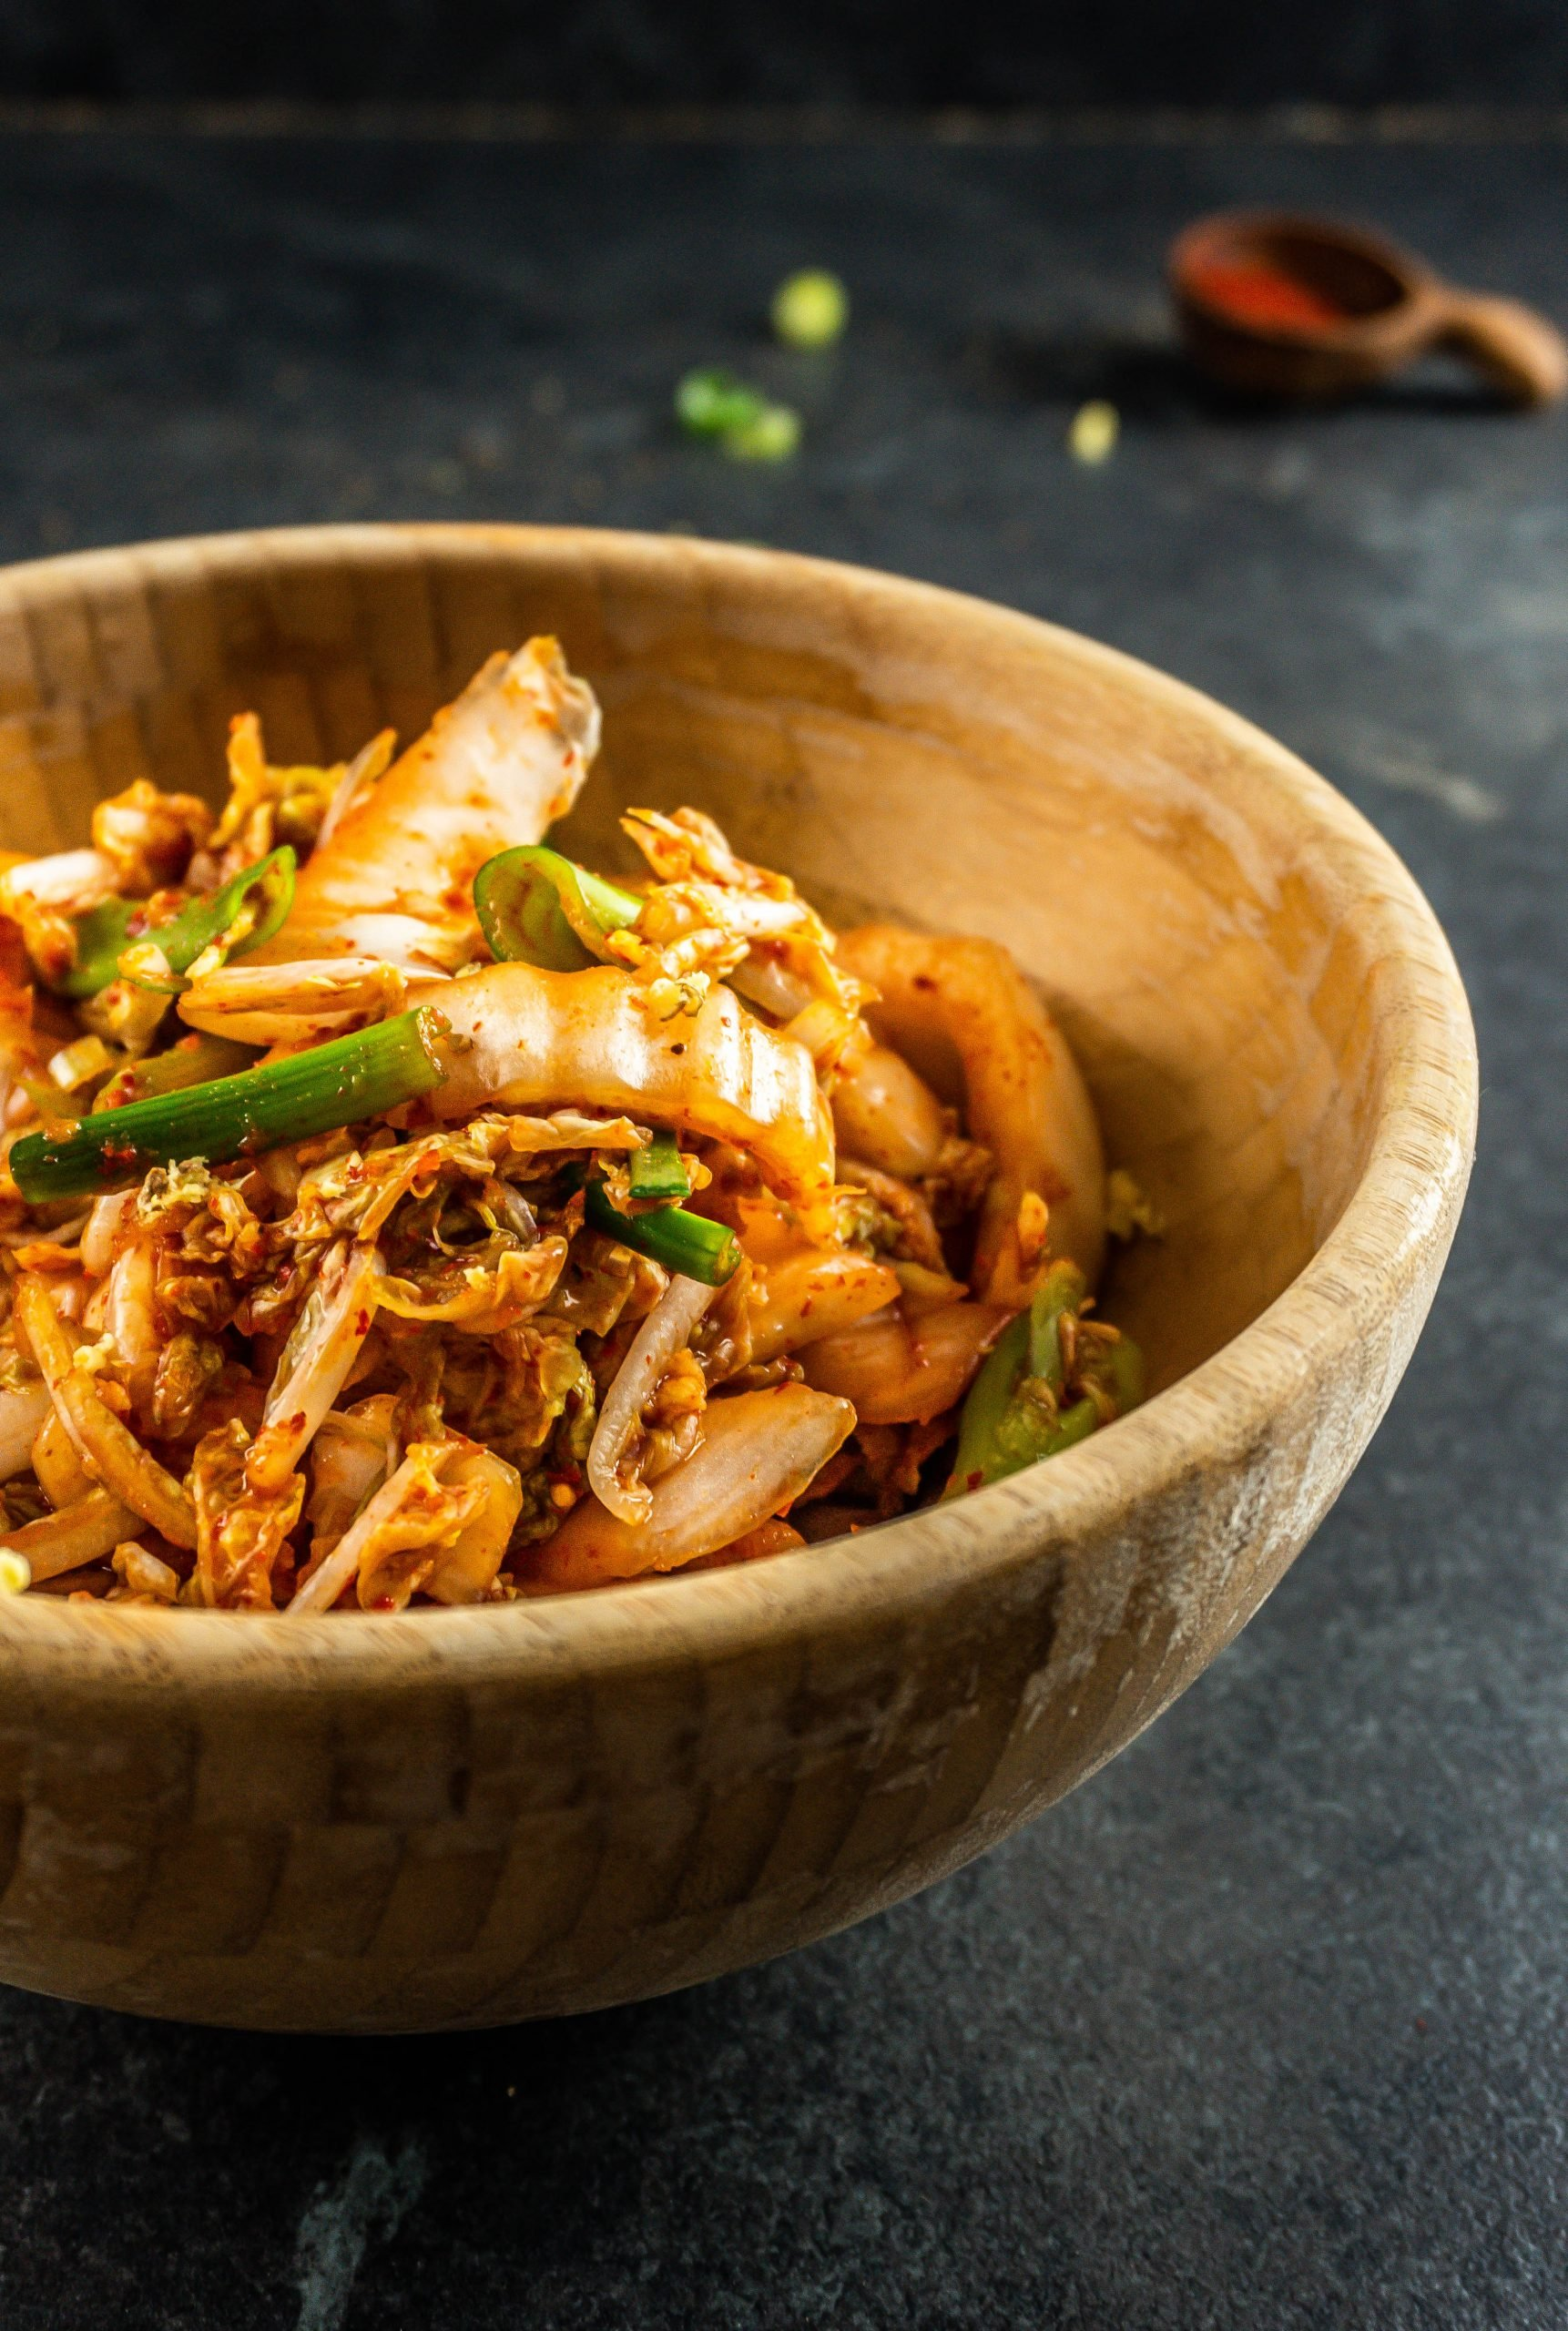 Delicious Vegan Kimchi in a wooden bowl photographed from a three-quarter angle